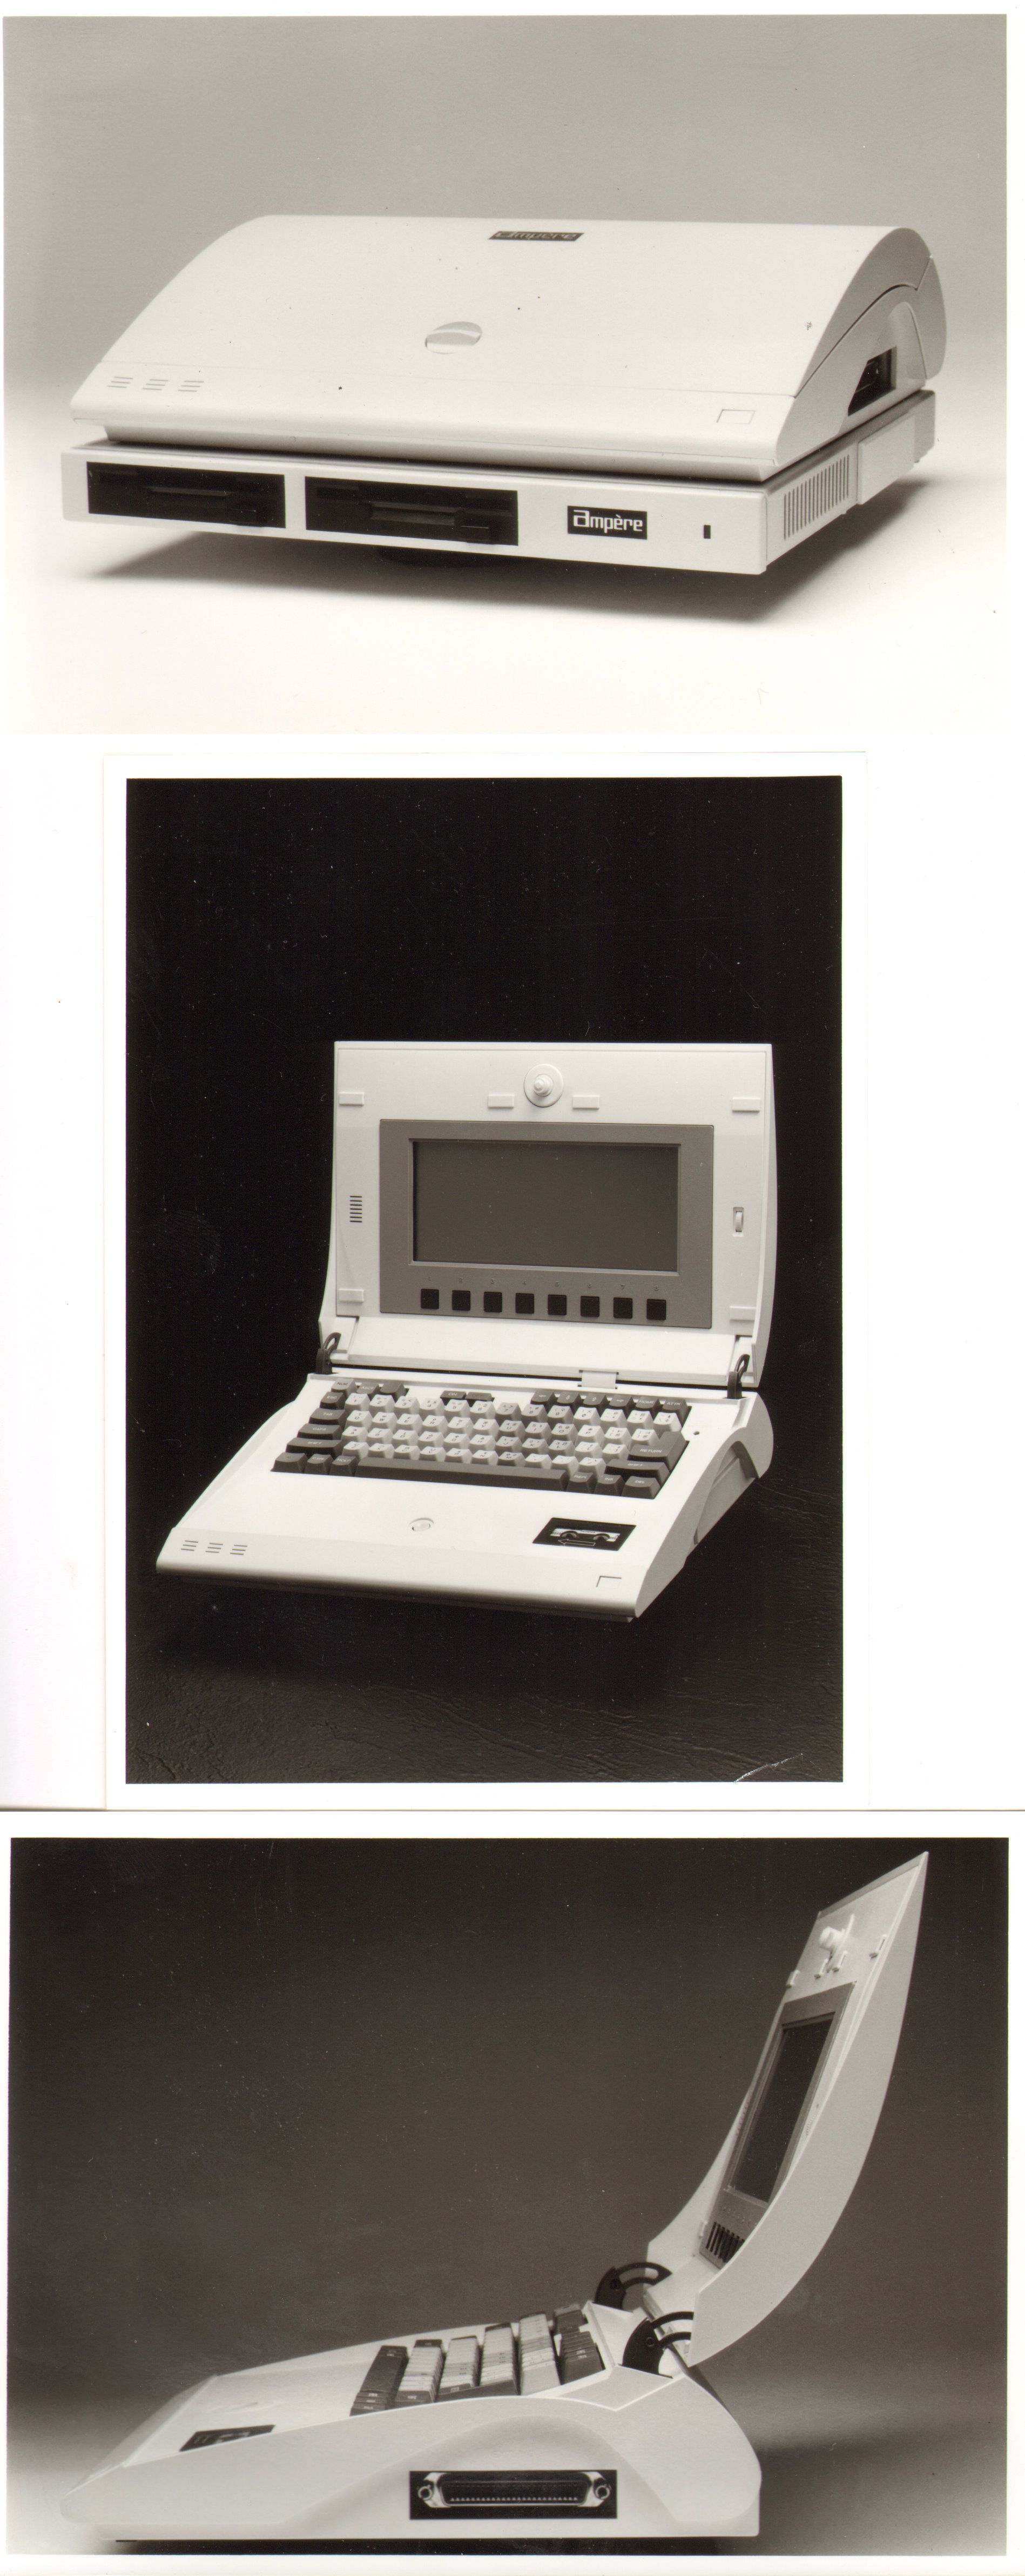 Ampere's WS-1 laptop was an oddball, but a cute oddball. When closed, its clamshell design resembled the wing of an airplane. Its case was designed by Kumeo Tamura, who also designed the Datsun 280...